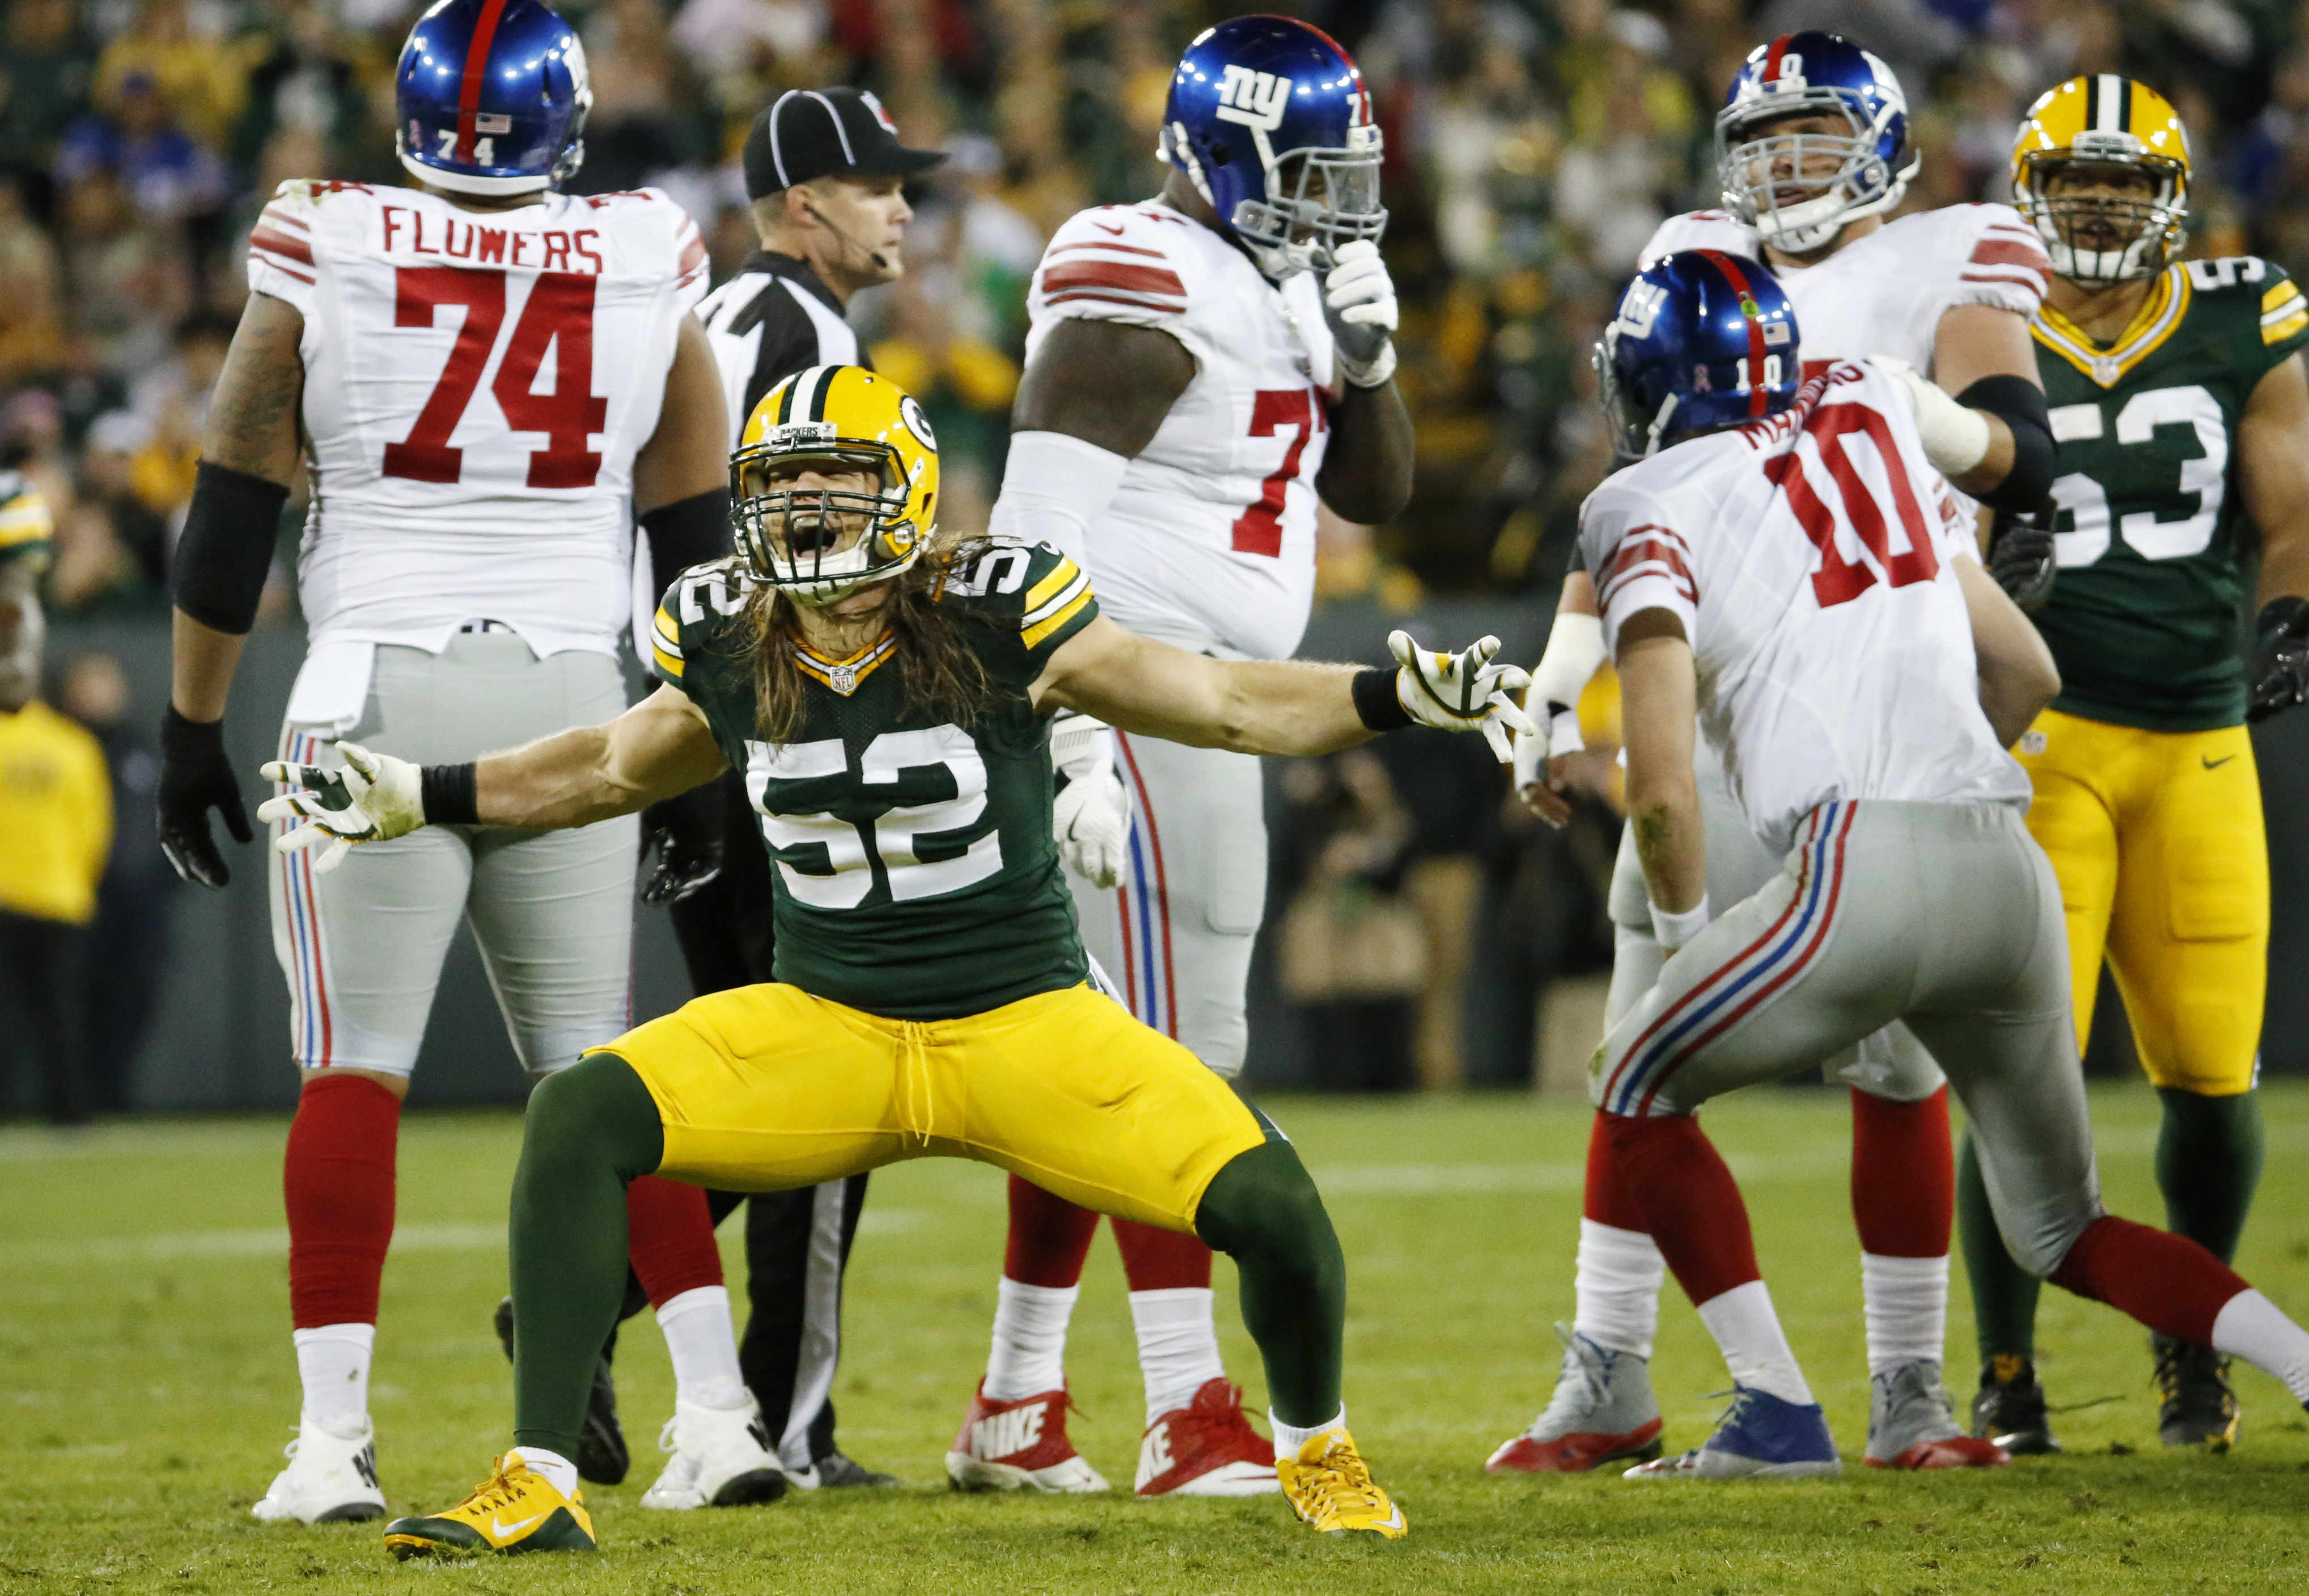 FILE - In this Oct. 9, 2016, file photo, Green Bay Packers' Clay Matthews celebrates a sack of New York Giants quarterback Eli Manning (10) during an NFL football game in Green Bay, Wis. After getting 14 sacks over the first four games, the Packers pass r